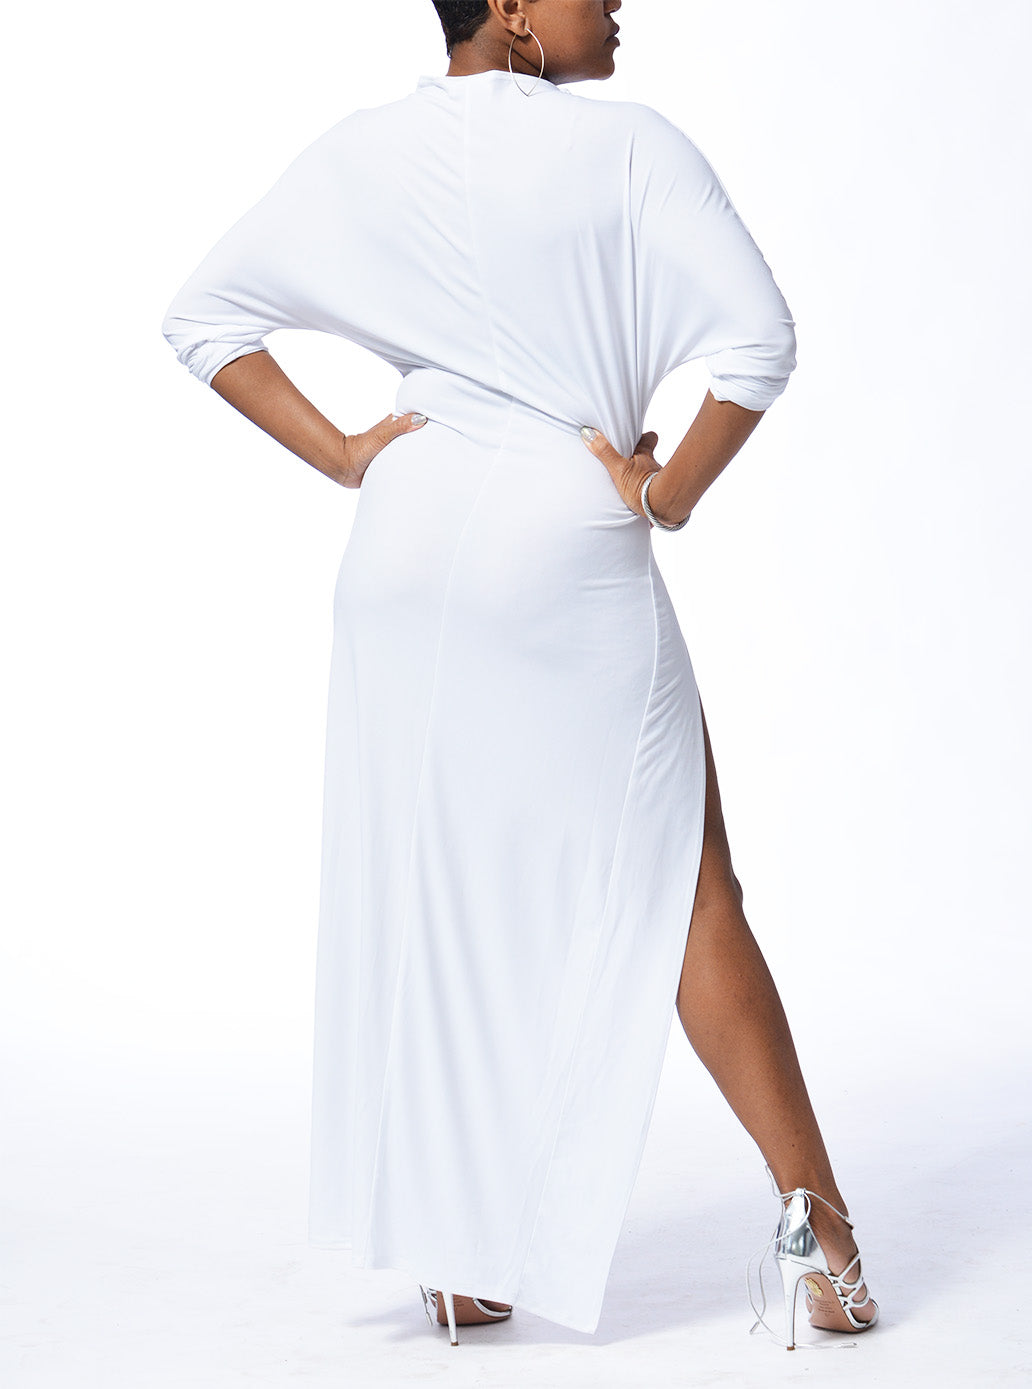 MILAN - Long Slit Dress - White